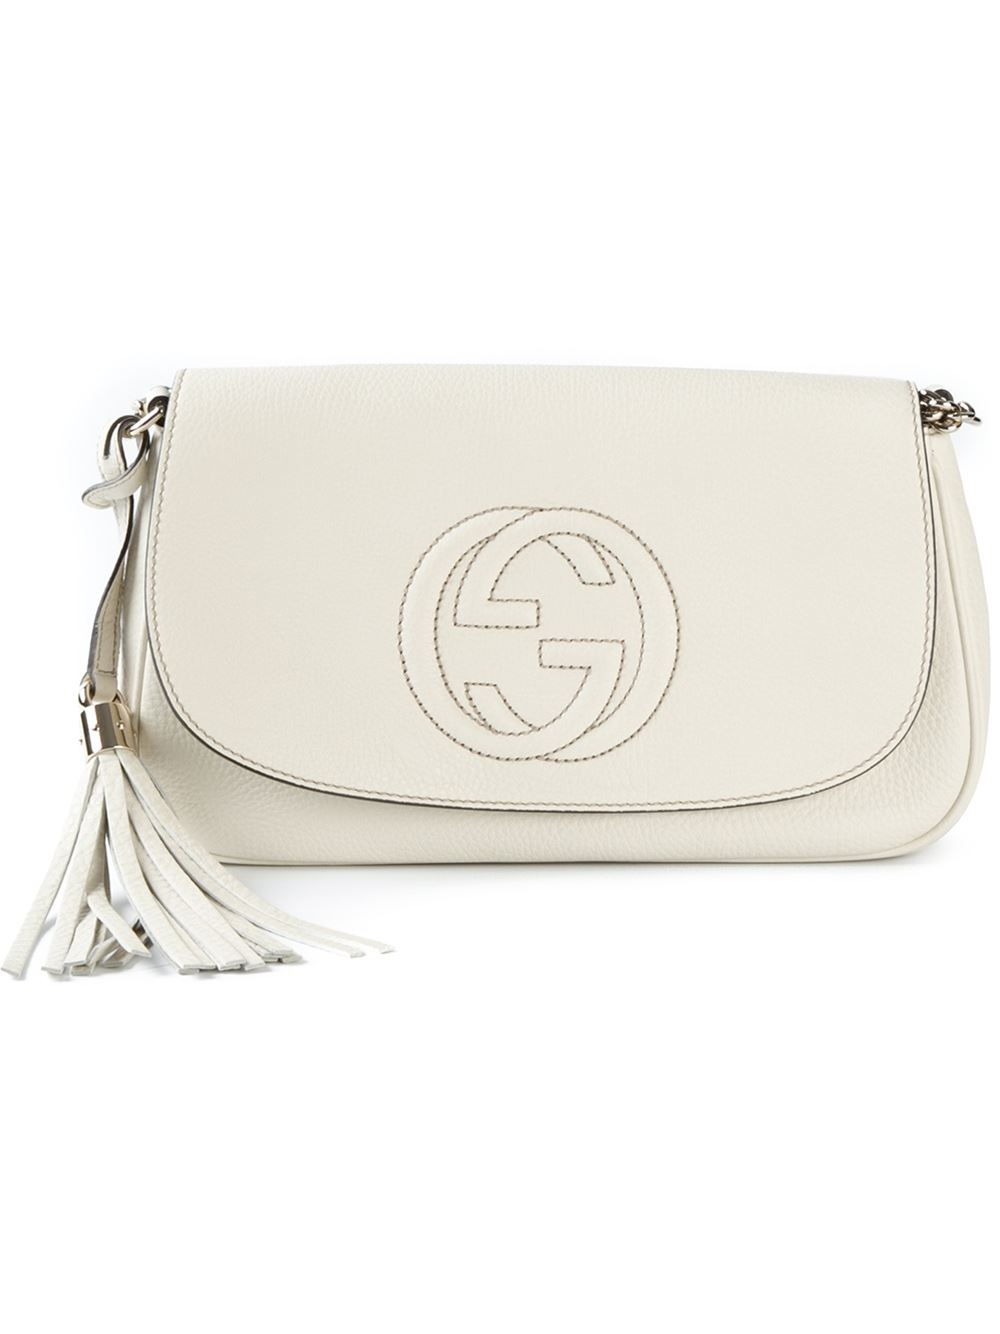 Gucci Handbags White Color